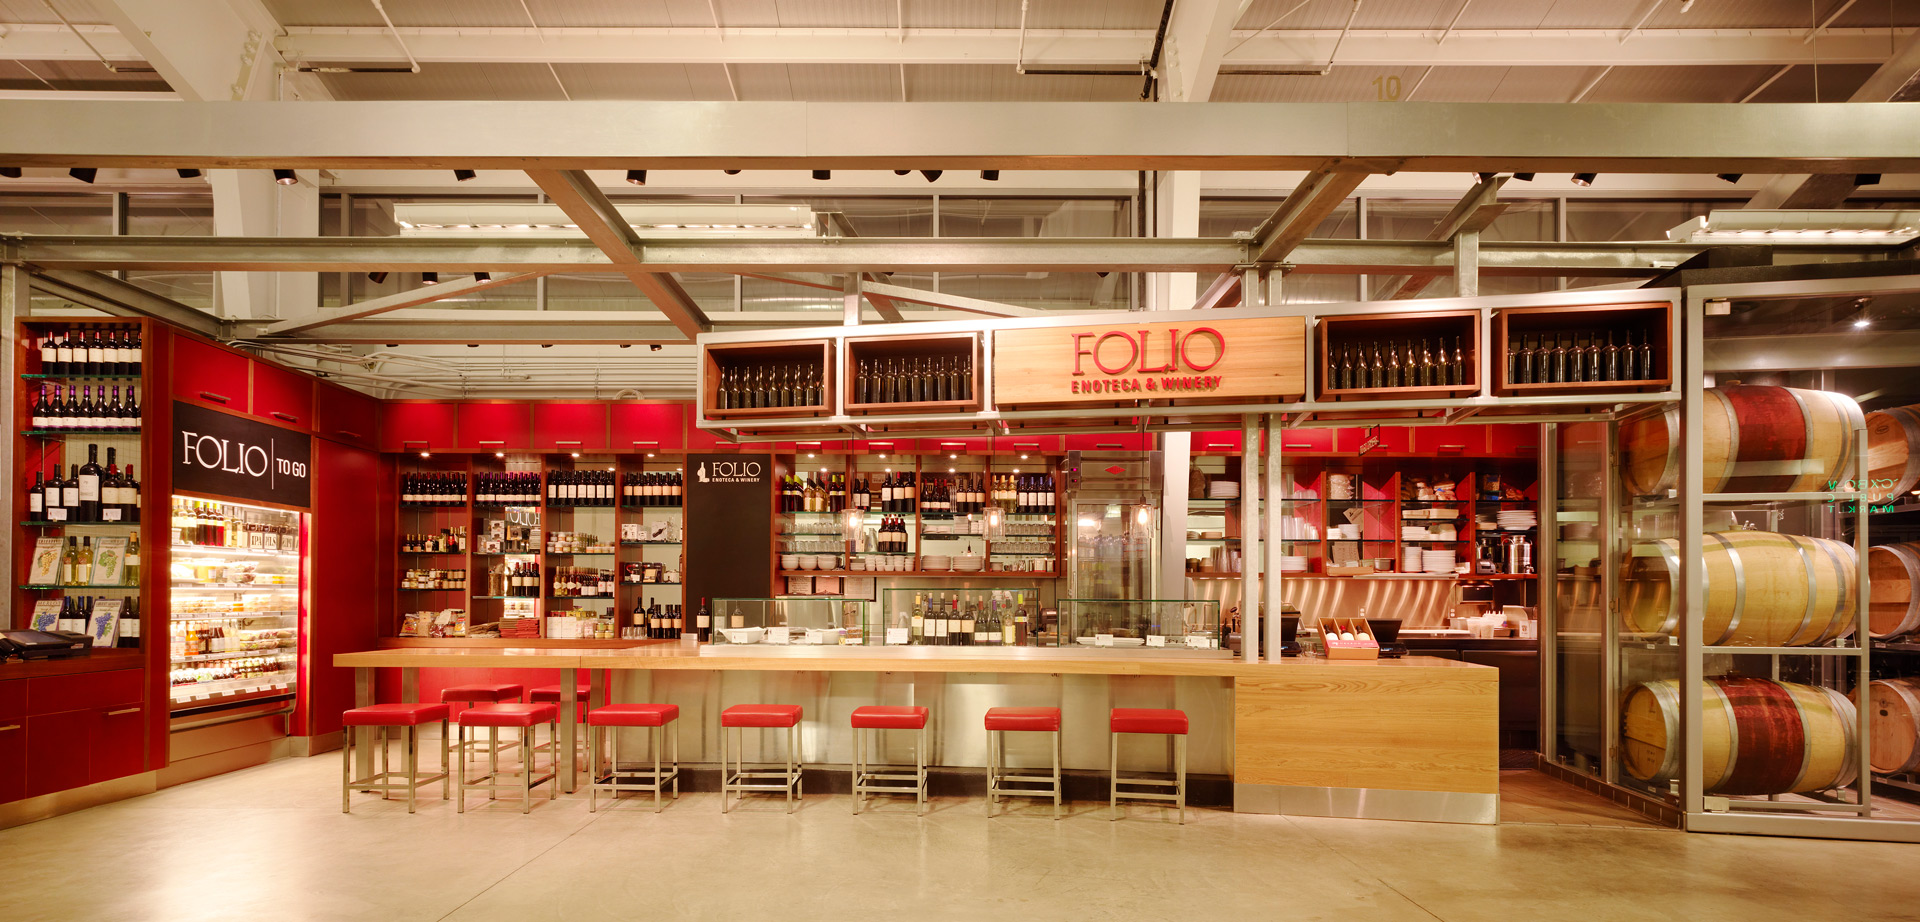 Folio Enoteca & Winery